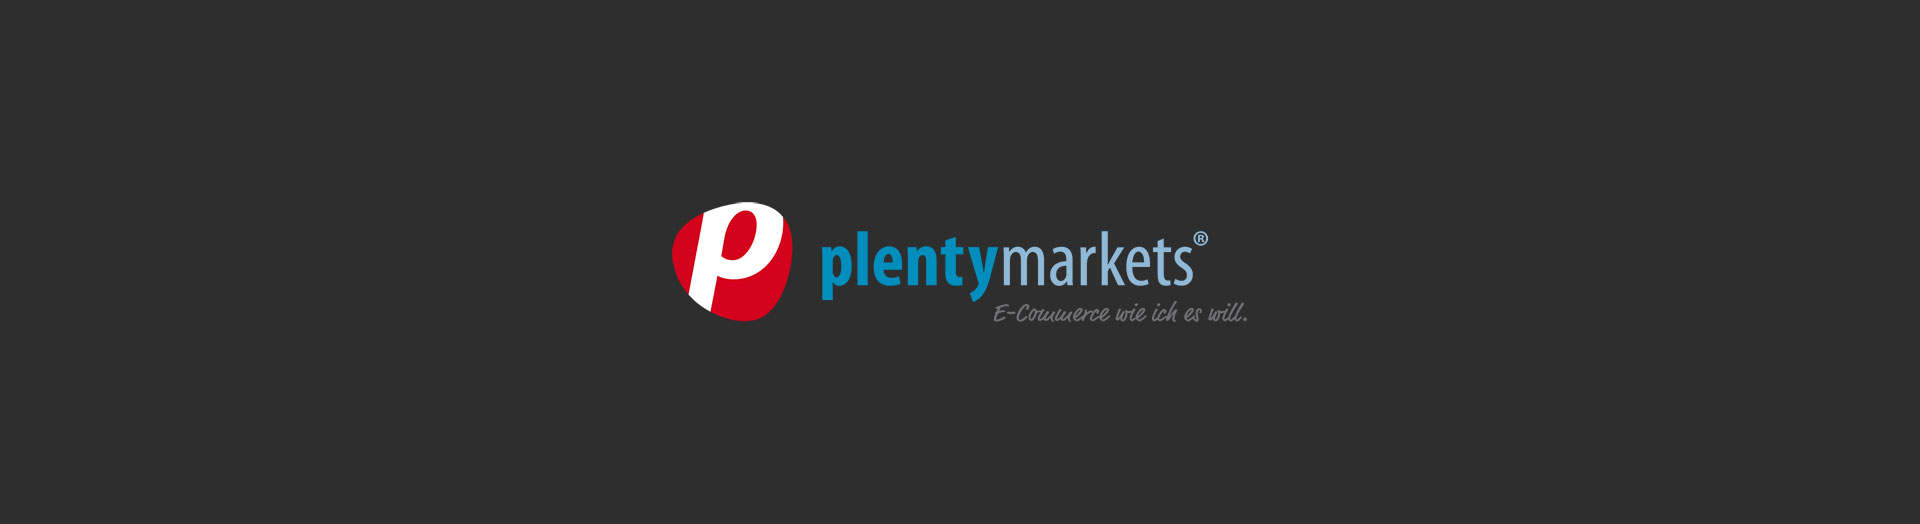 Plentymarkets E-Commerce services